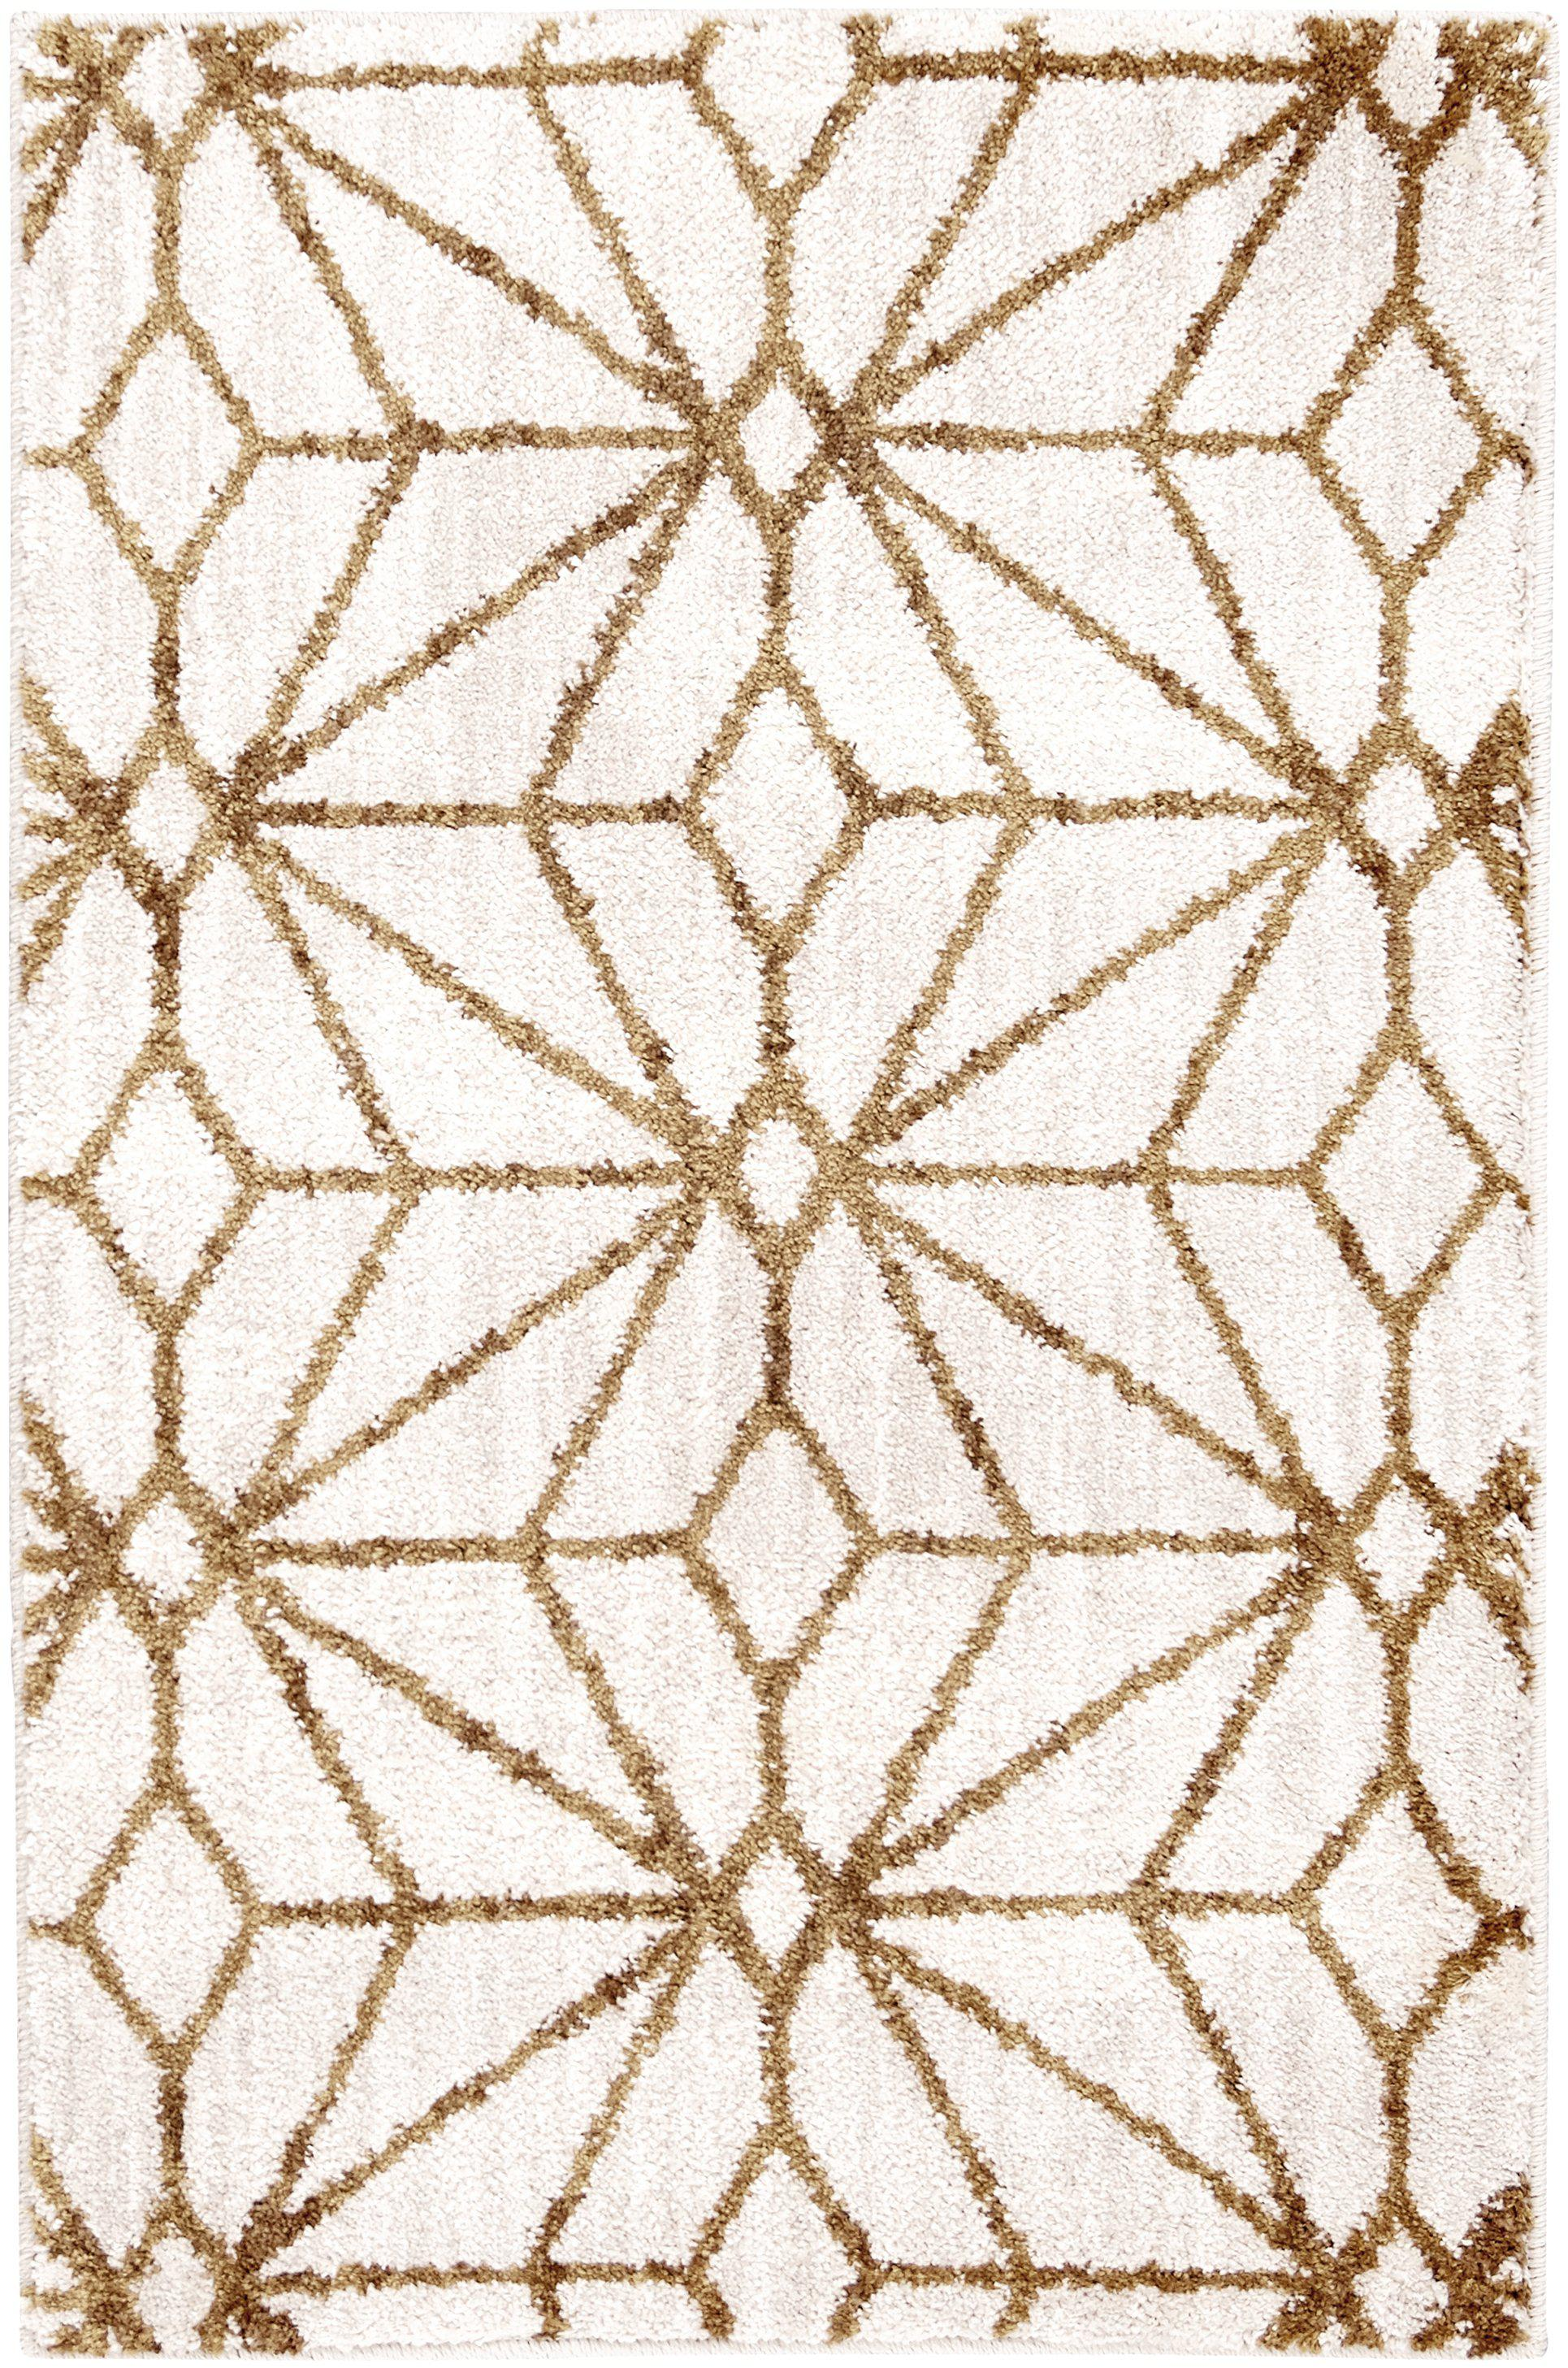 Artisan Celeste Brushed Gold by Scott Living Area Rug-Area Rug-Scott Living-2'x3'-The Rug Truck